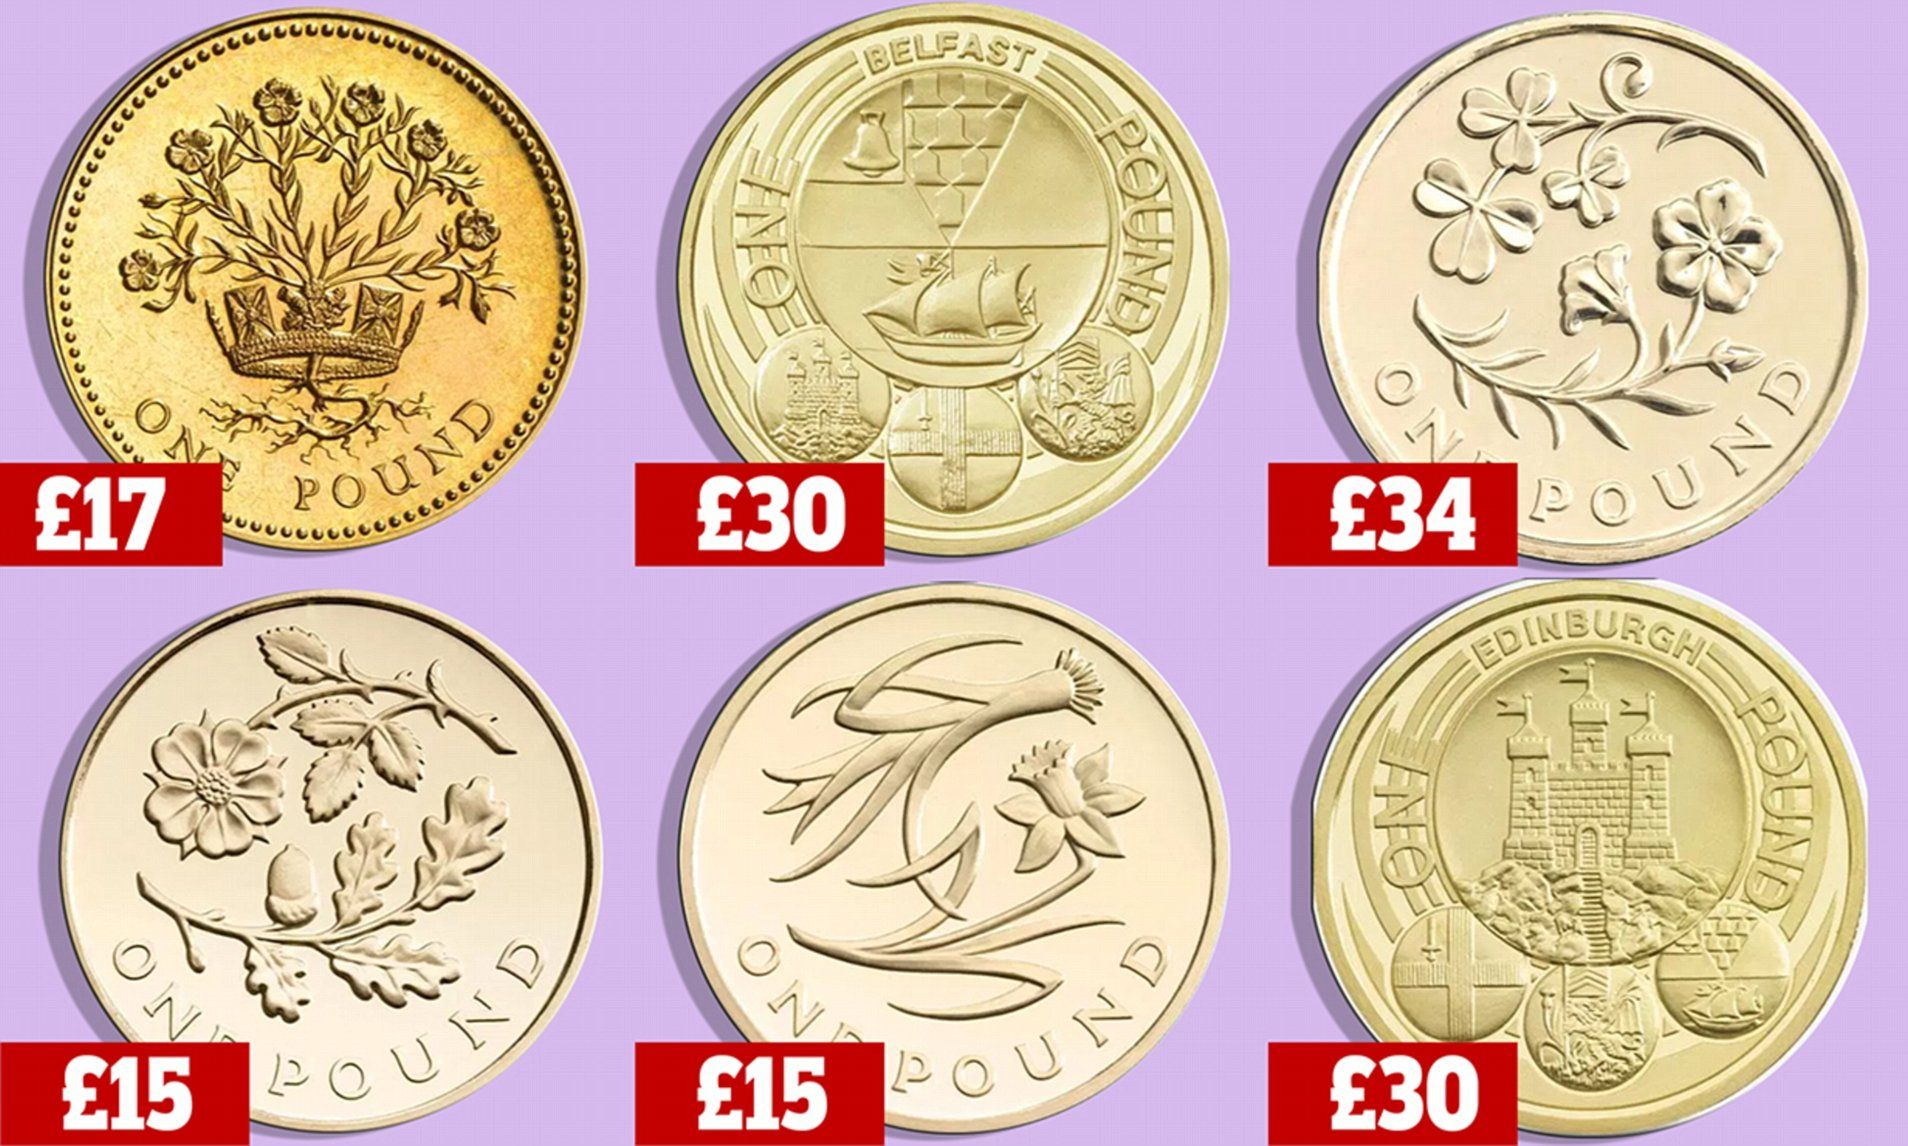 Pound Coin Worth 30 In Your Pocket